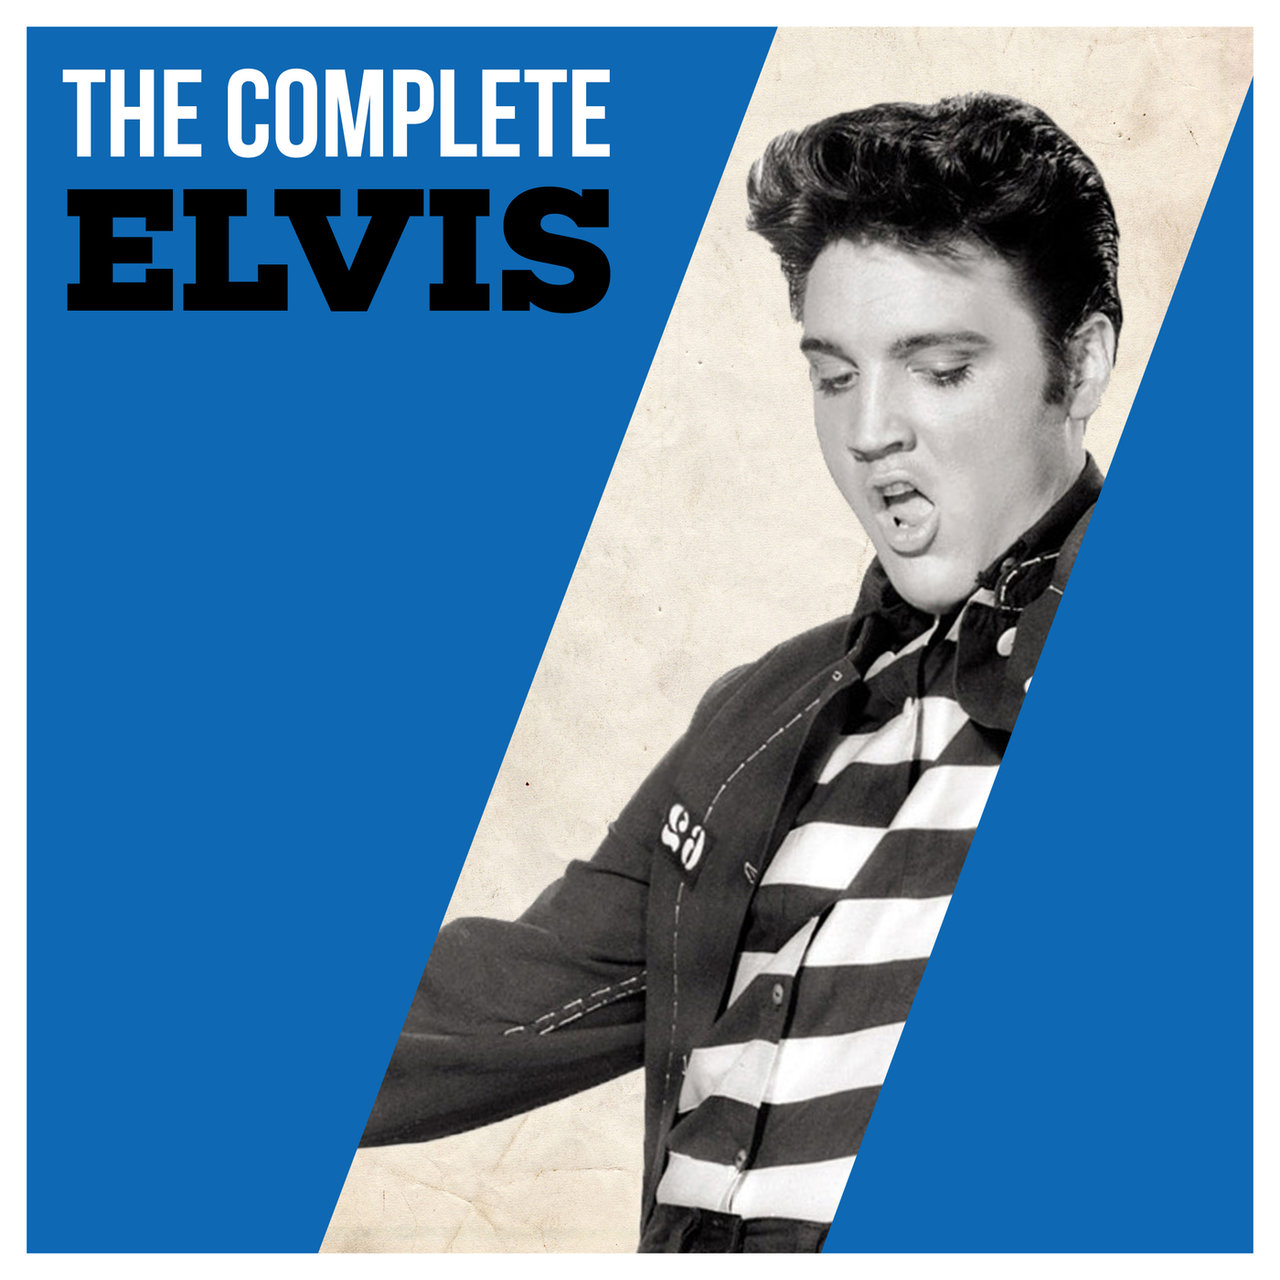 The Complete Elvis